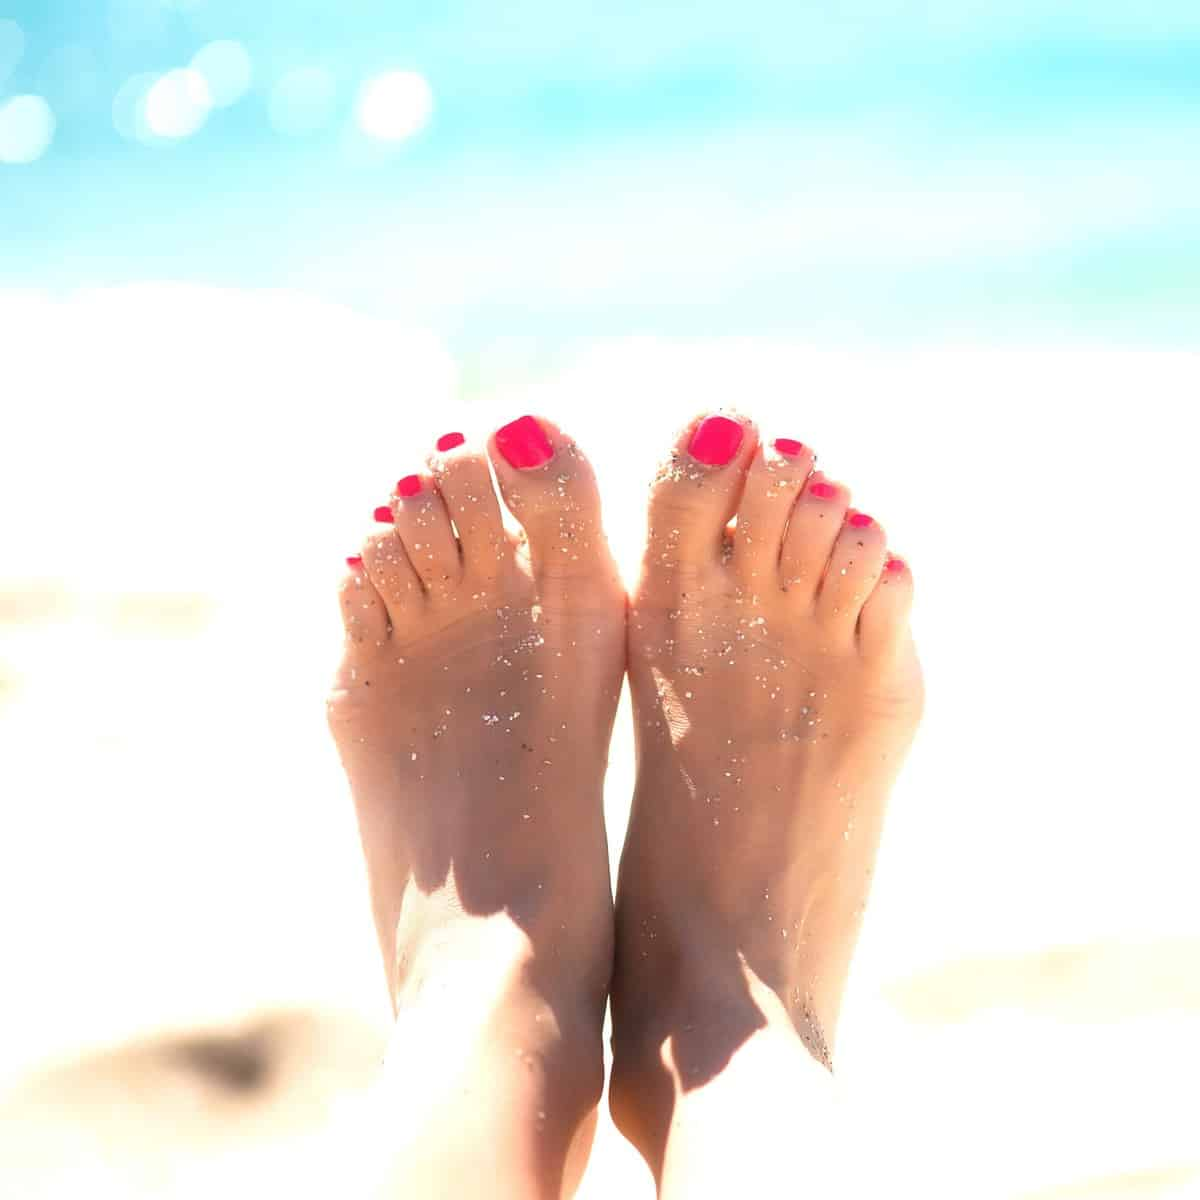 Selling feet pictures on Instantfeet